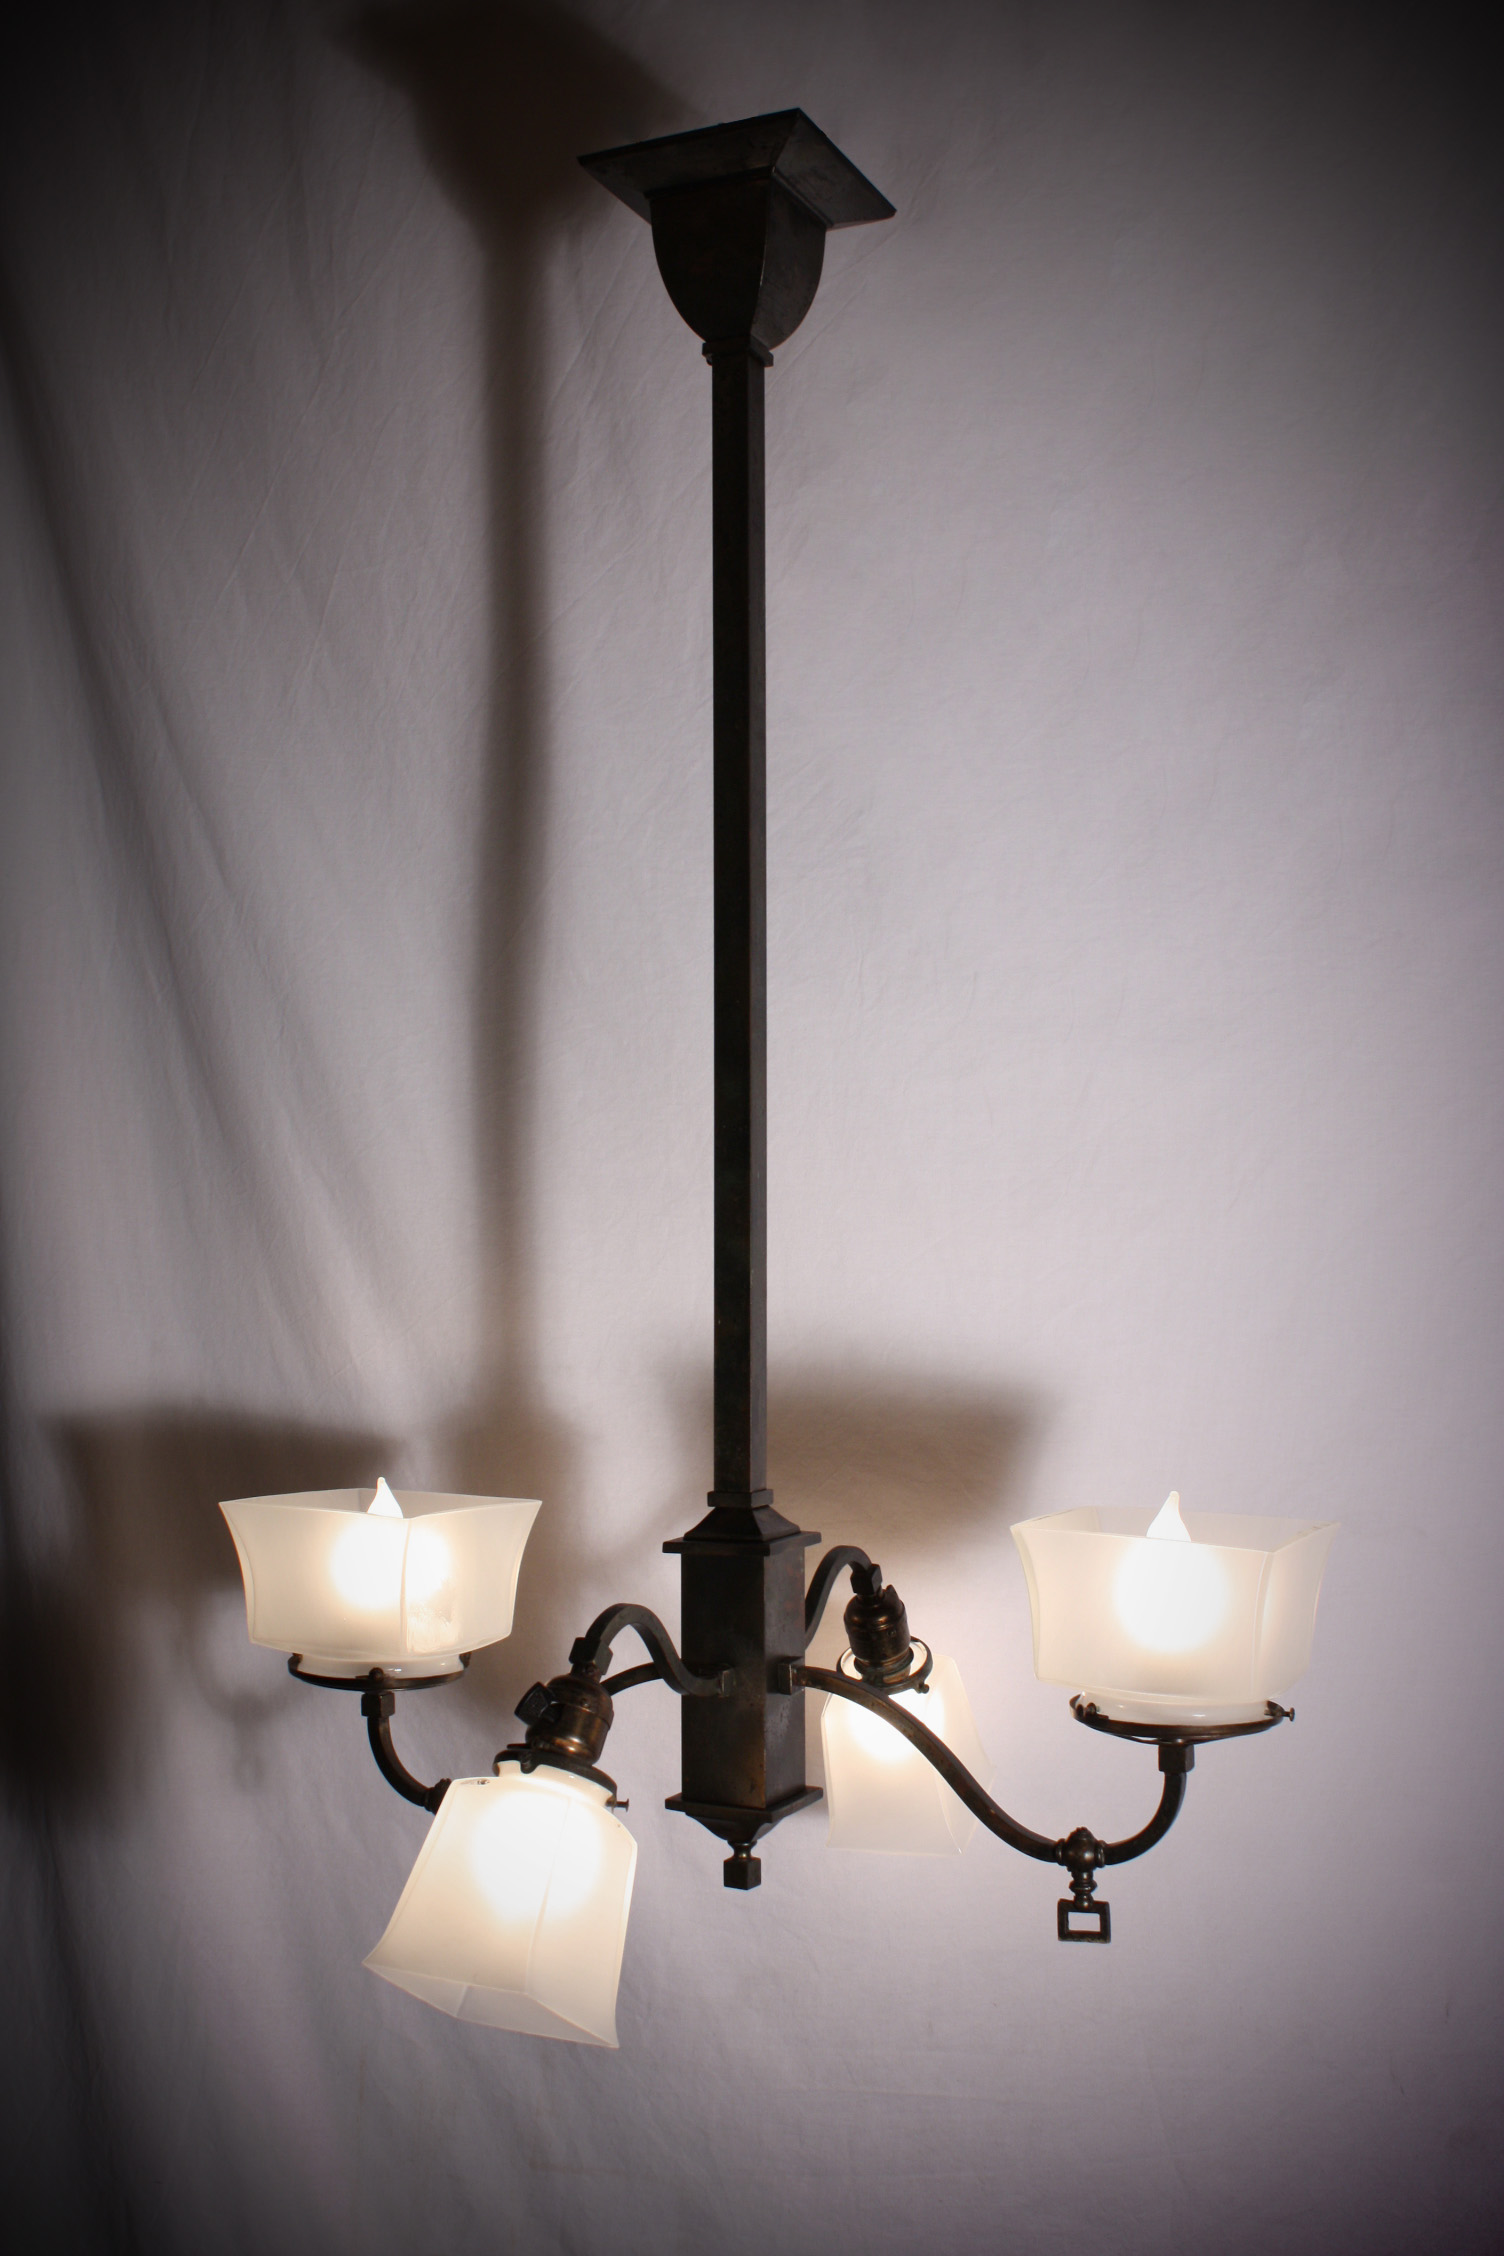 This is a fabulous antique brass Arts and Crafts four-light chandelier,  originally half gas and half electric, now all wired for electricity. - Amazing Antique Arts & Crafts Brass Four-Light Gas & Electric